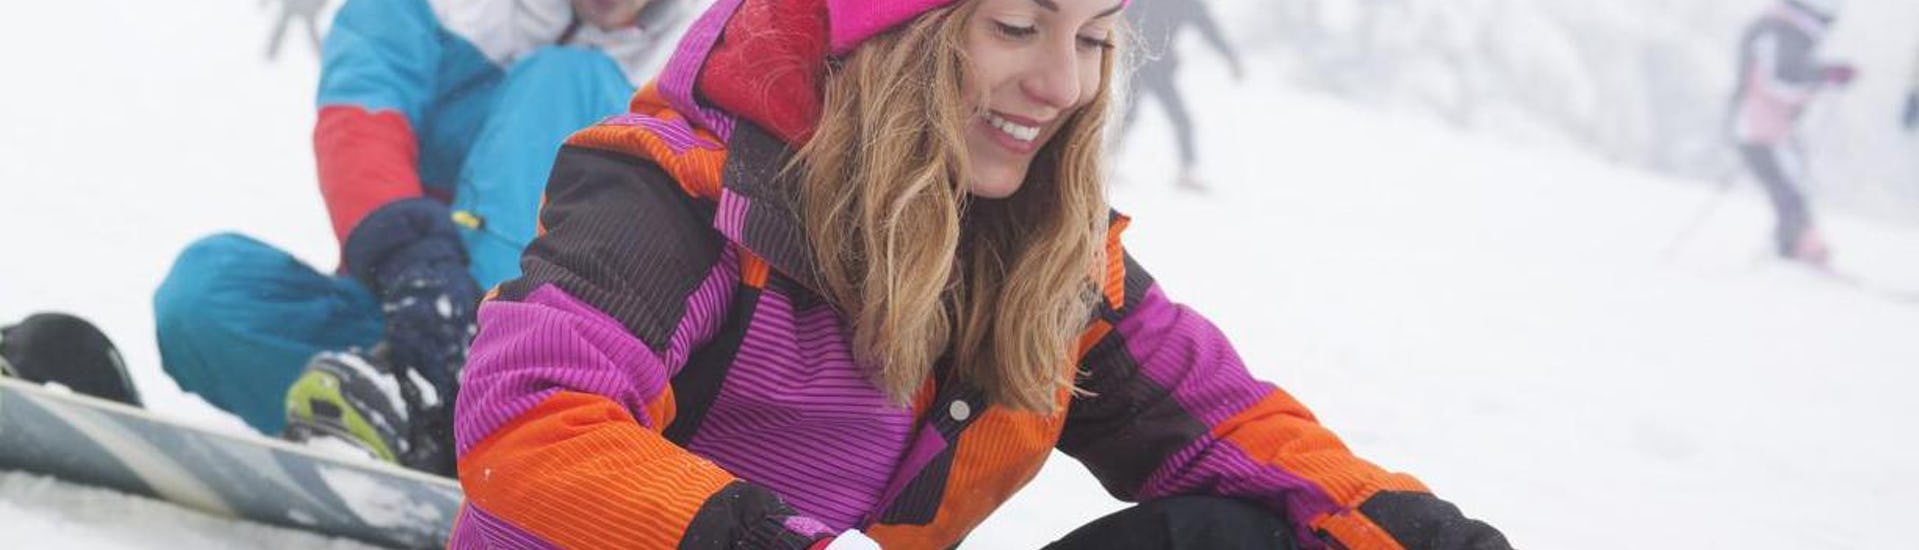 Snowboard Instructor Private in Stuben - All Levels